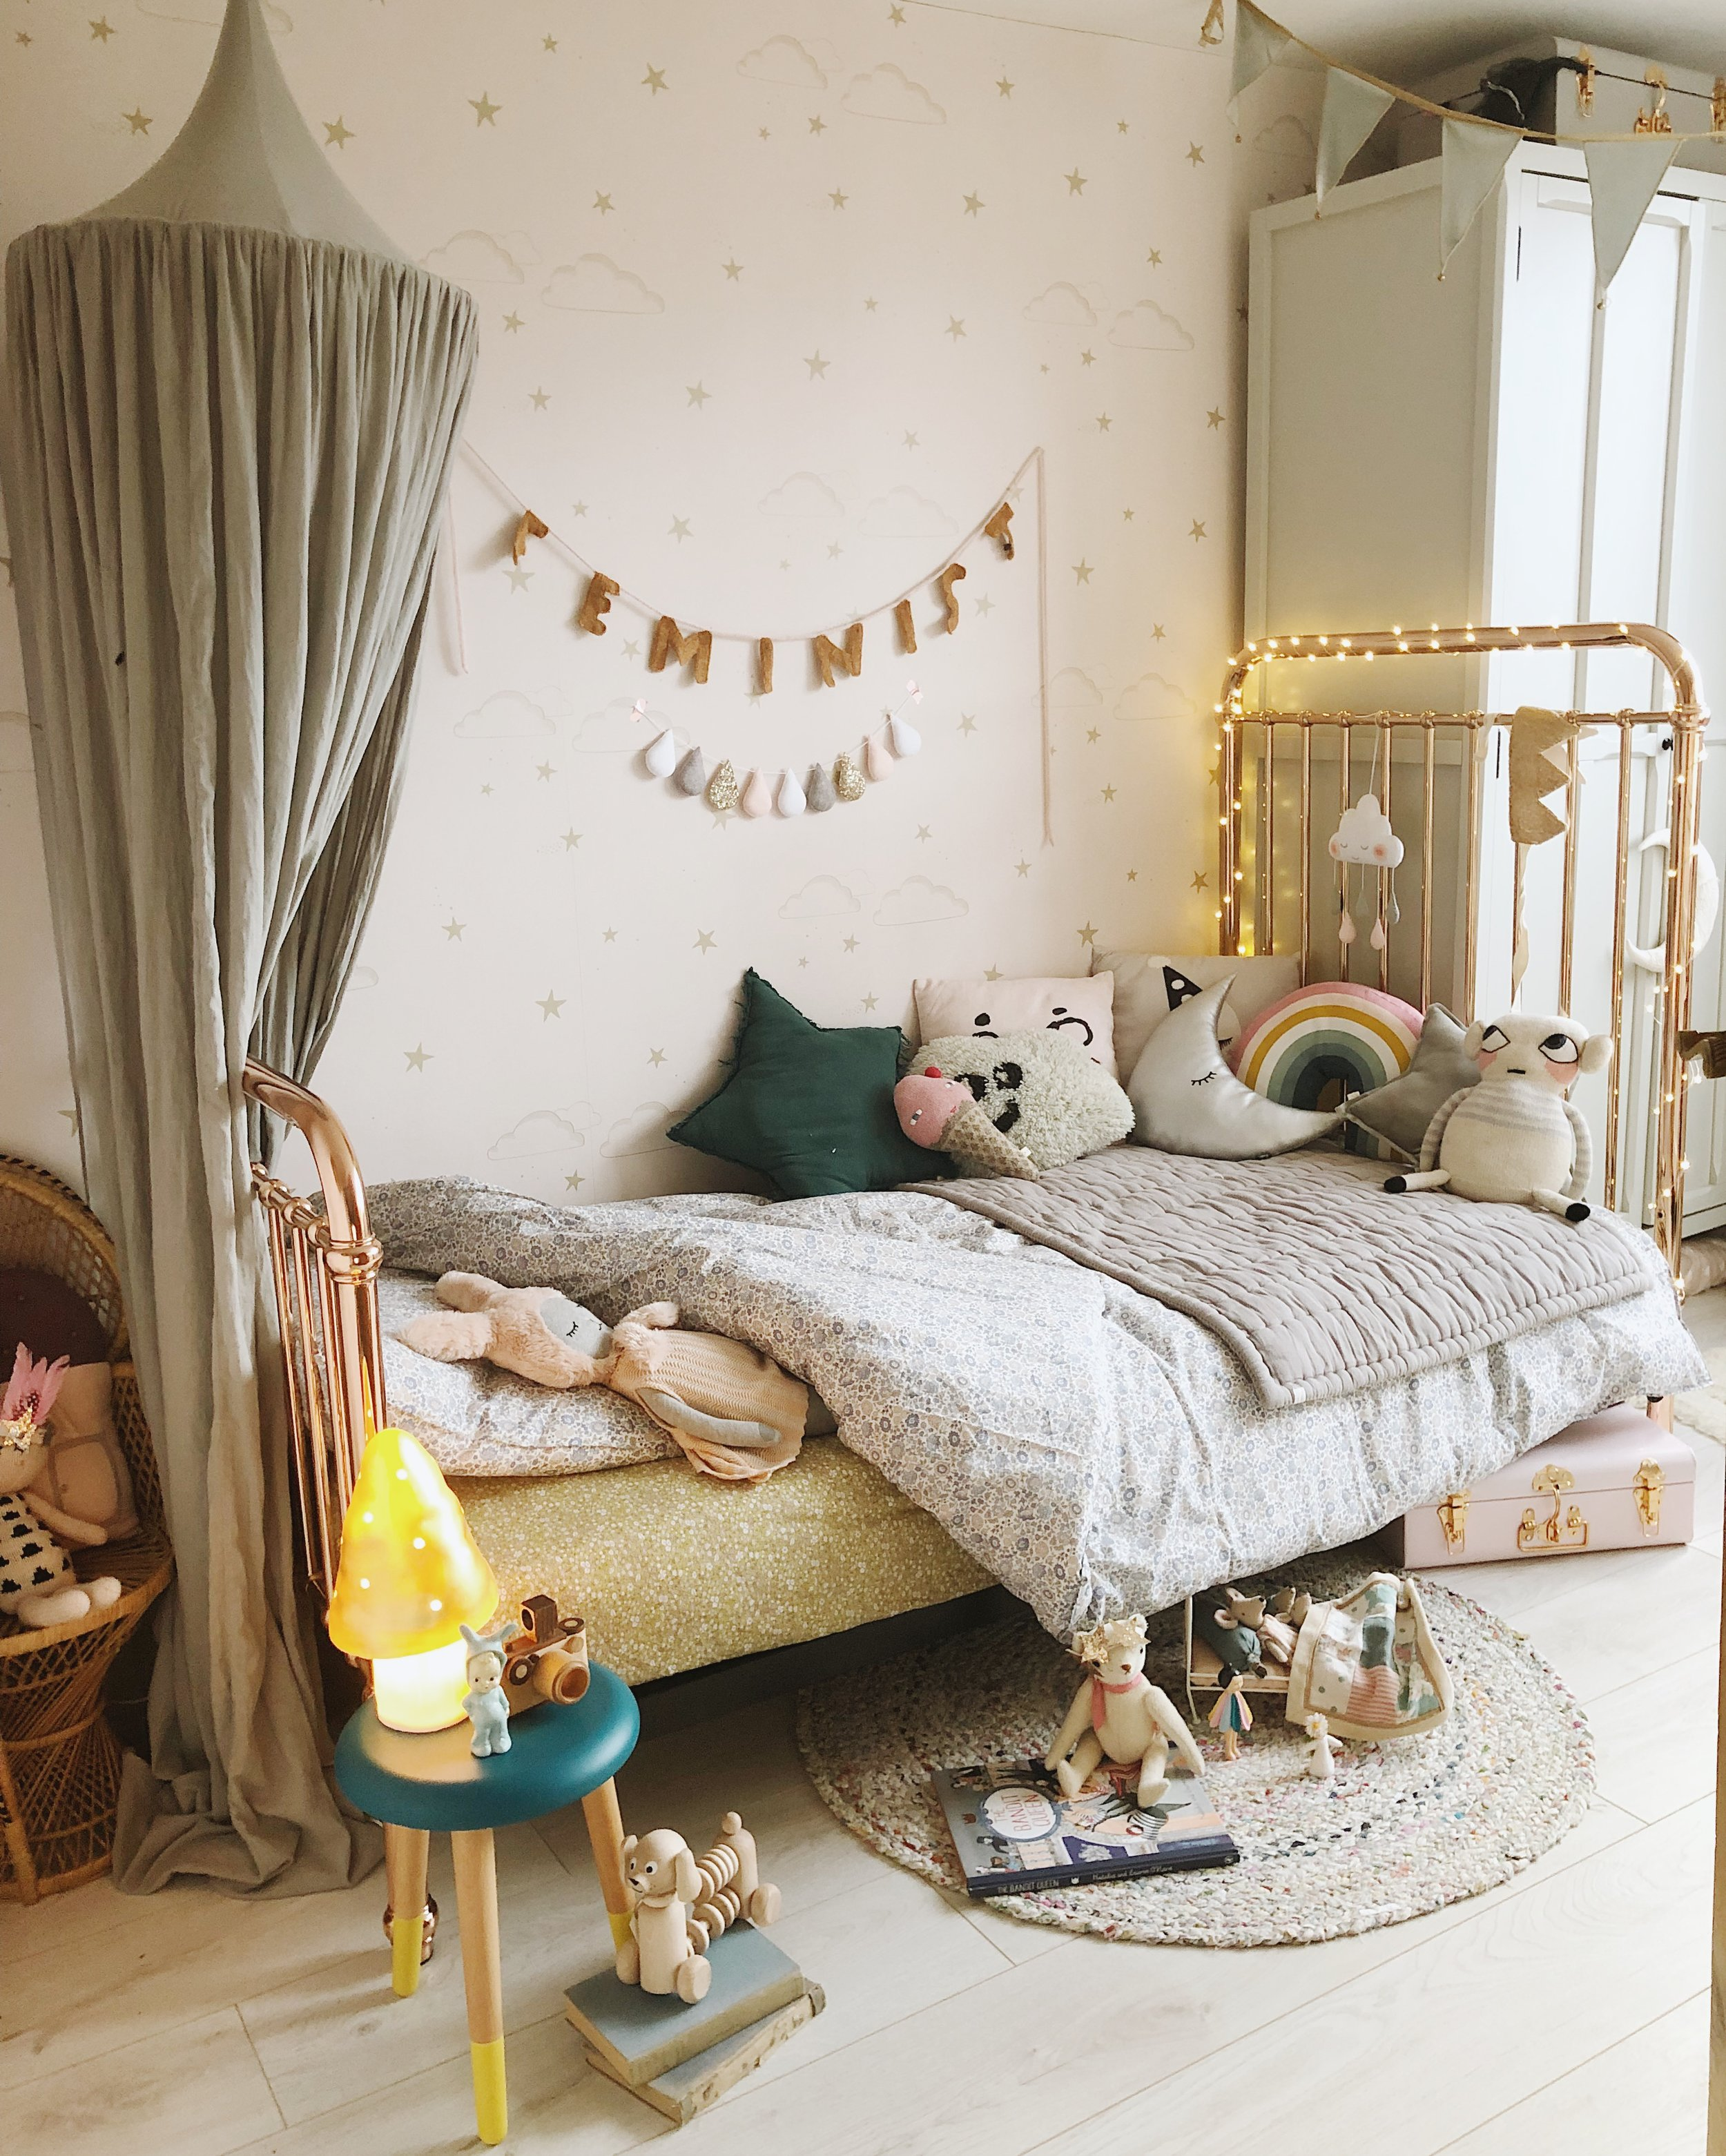 Dreamy new Incy Interiors bed fron Cottage Toys in the U.K.